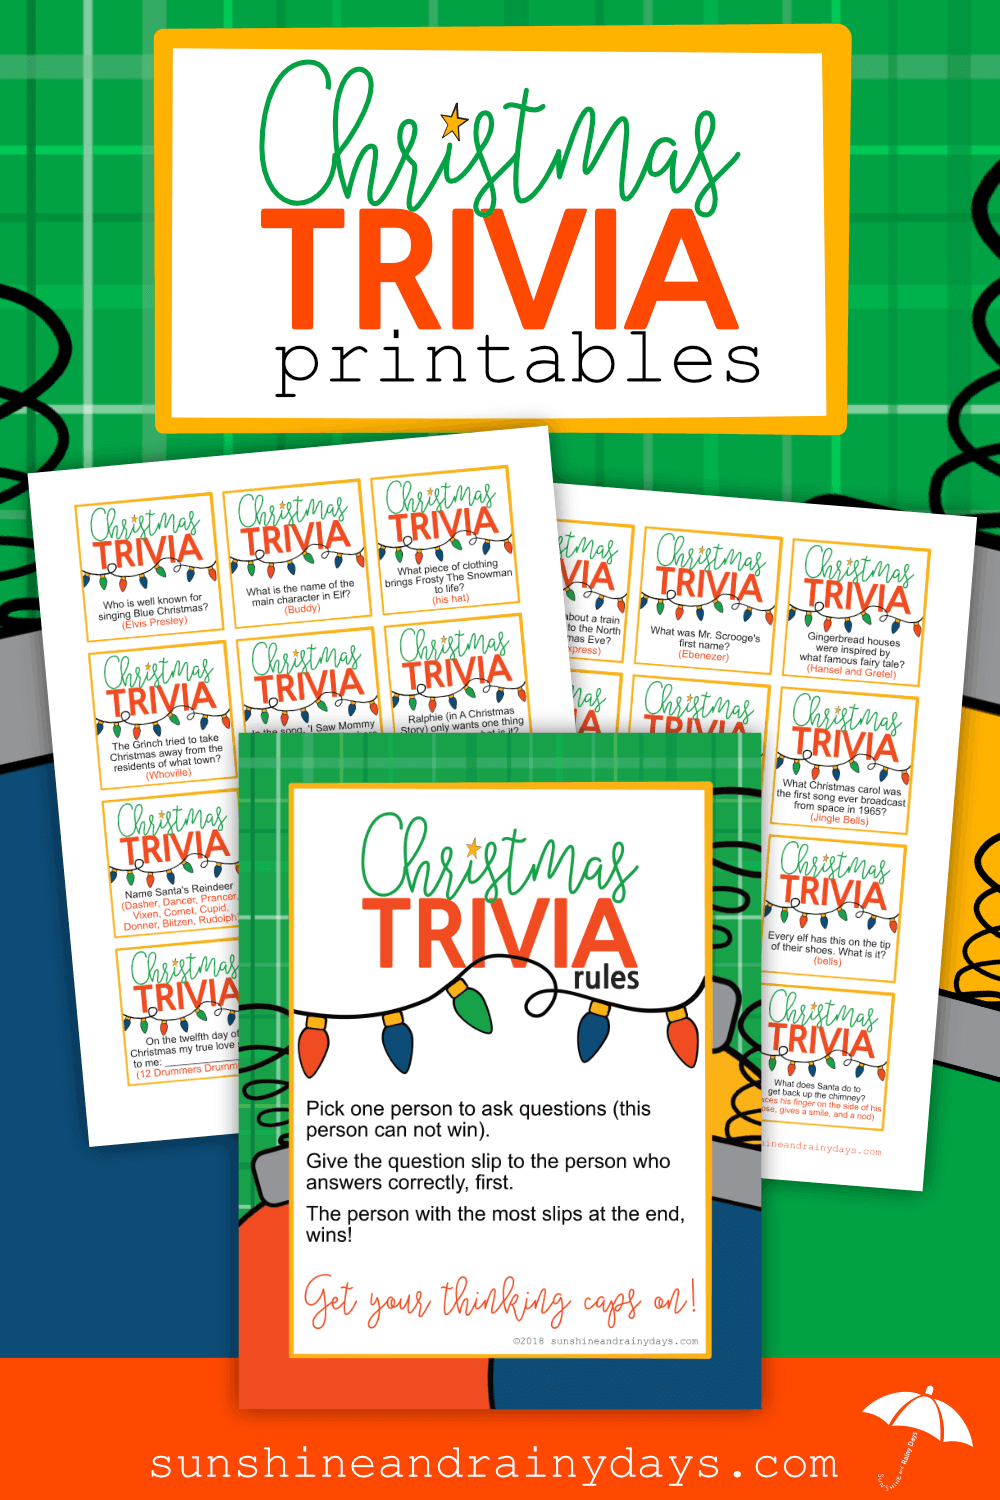 Are you hosting Christmas this year and want to bring a bit of excitement to the crowd? The Christmas Trivia Game fits the bill! Even Mr. Grumpy Pants will want to get involved with this one so he can share his vast knowledge! Christmas Trivia Games | Christmas Trivia Printable | Christmas Trivia Games For Family | #ChristmasGames #ChristmasPrintables #SARD